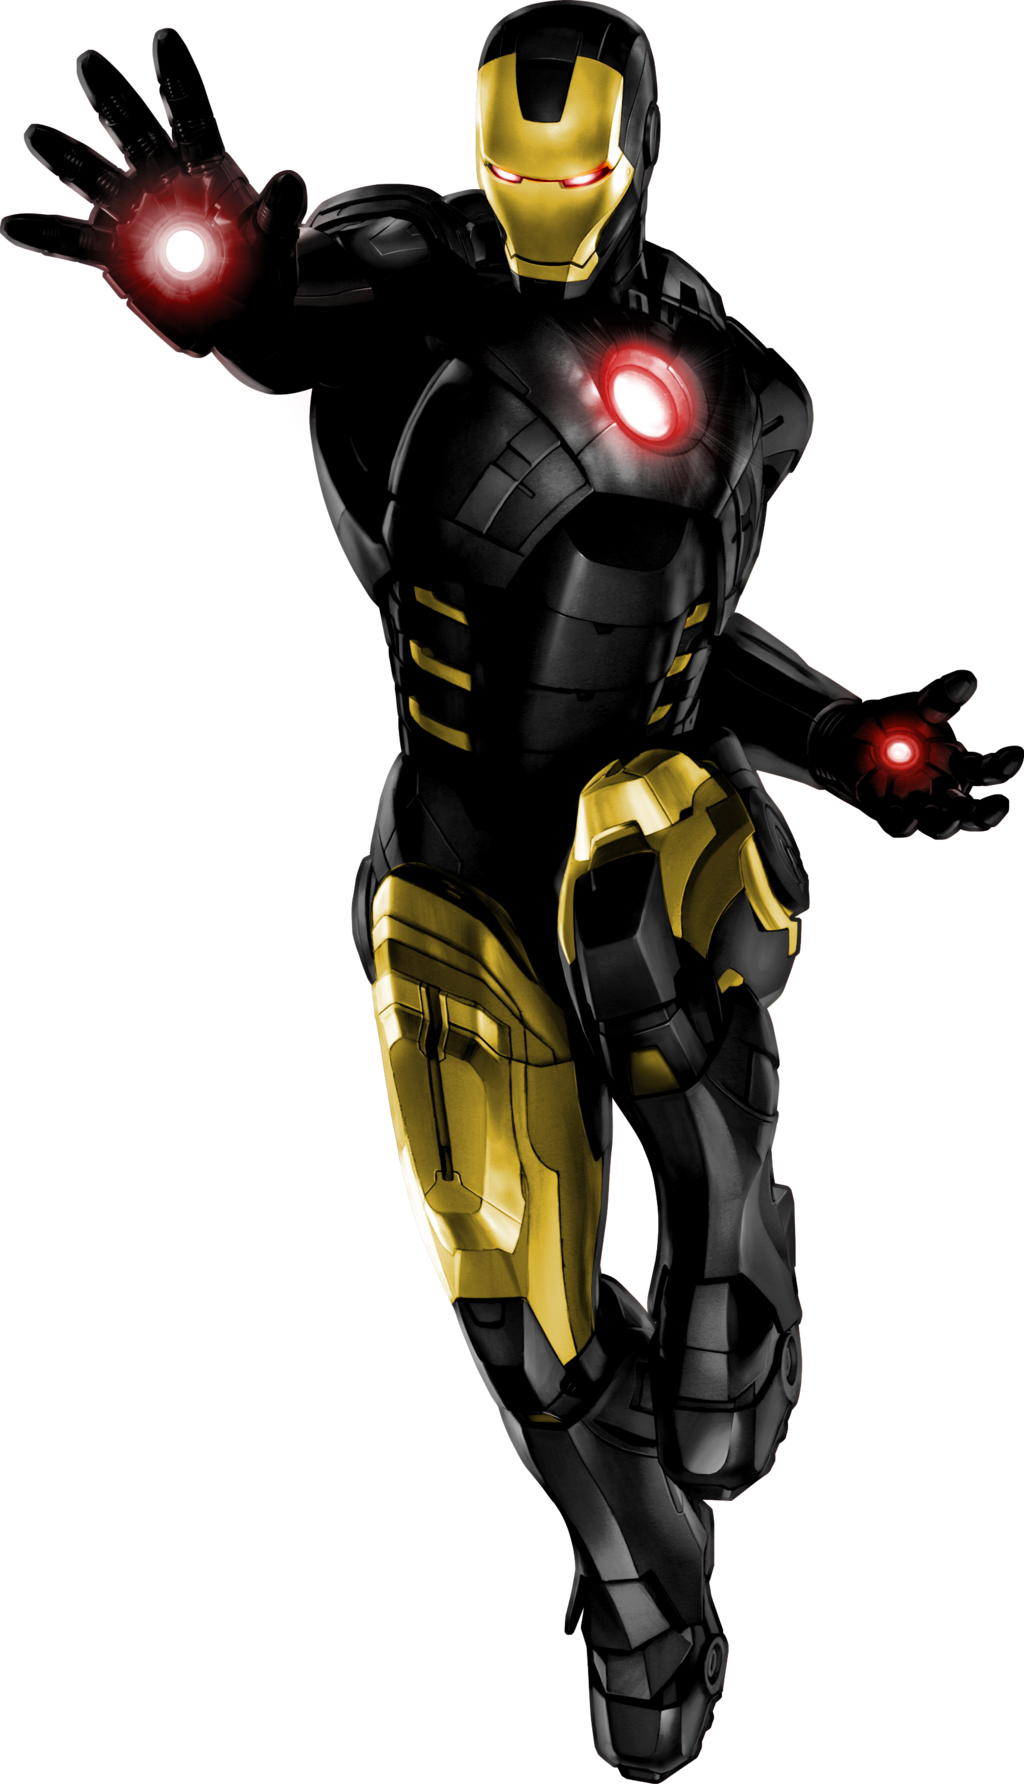 Iron Man Black And Gold Displaying 18 Images For Iron Alt Image Iron Man Comic Iron Man Iron Man Armor